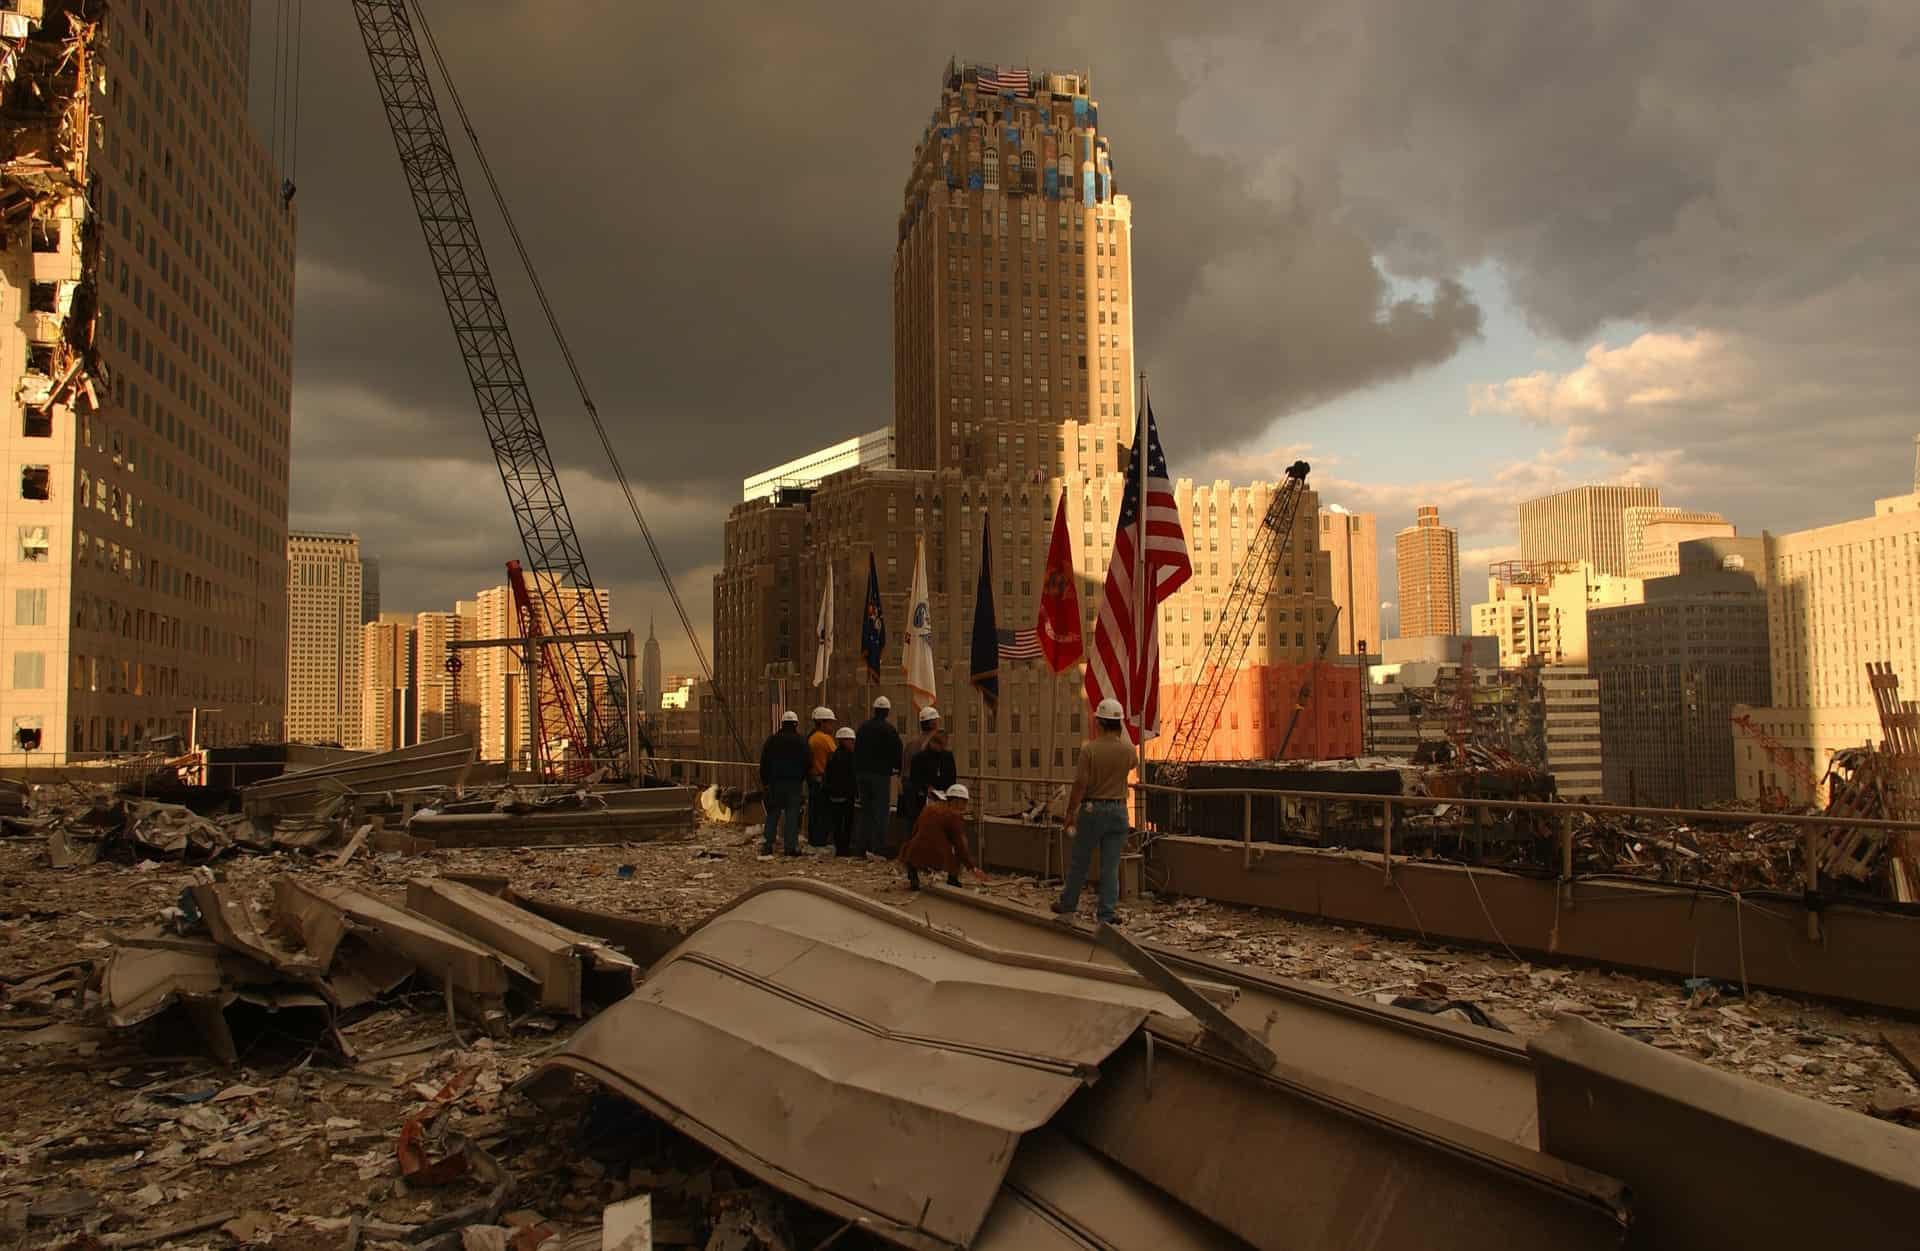 9/11 thoughts on the heroes of the day